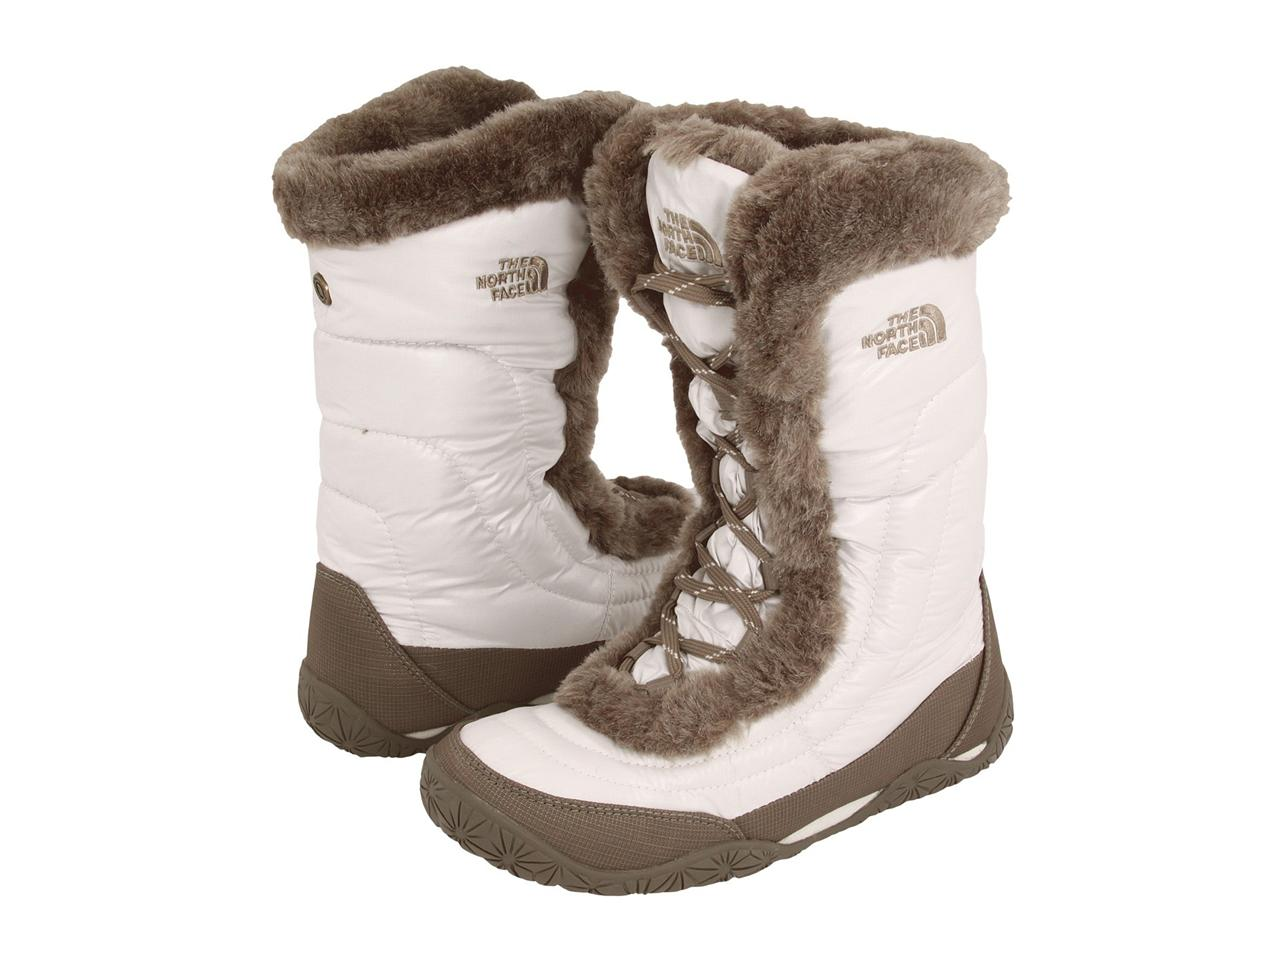 The-North-Face-120-Nuptse-Fur-IV-4-Womens-Boot-Shoe-White-Ivory-Winter-Snow